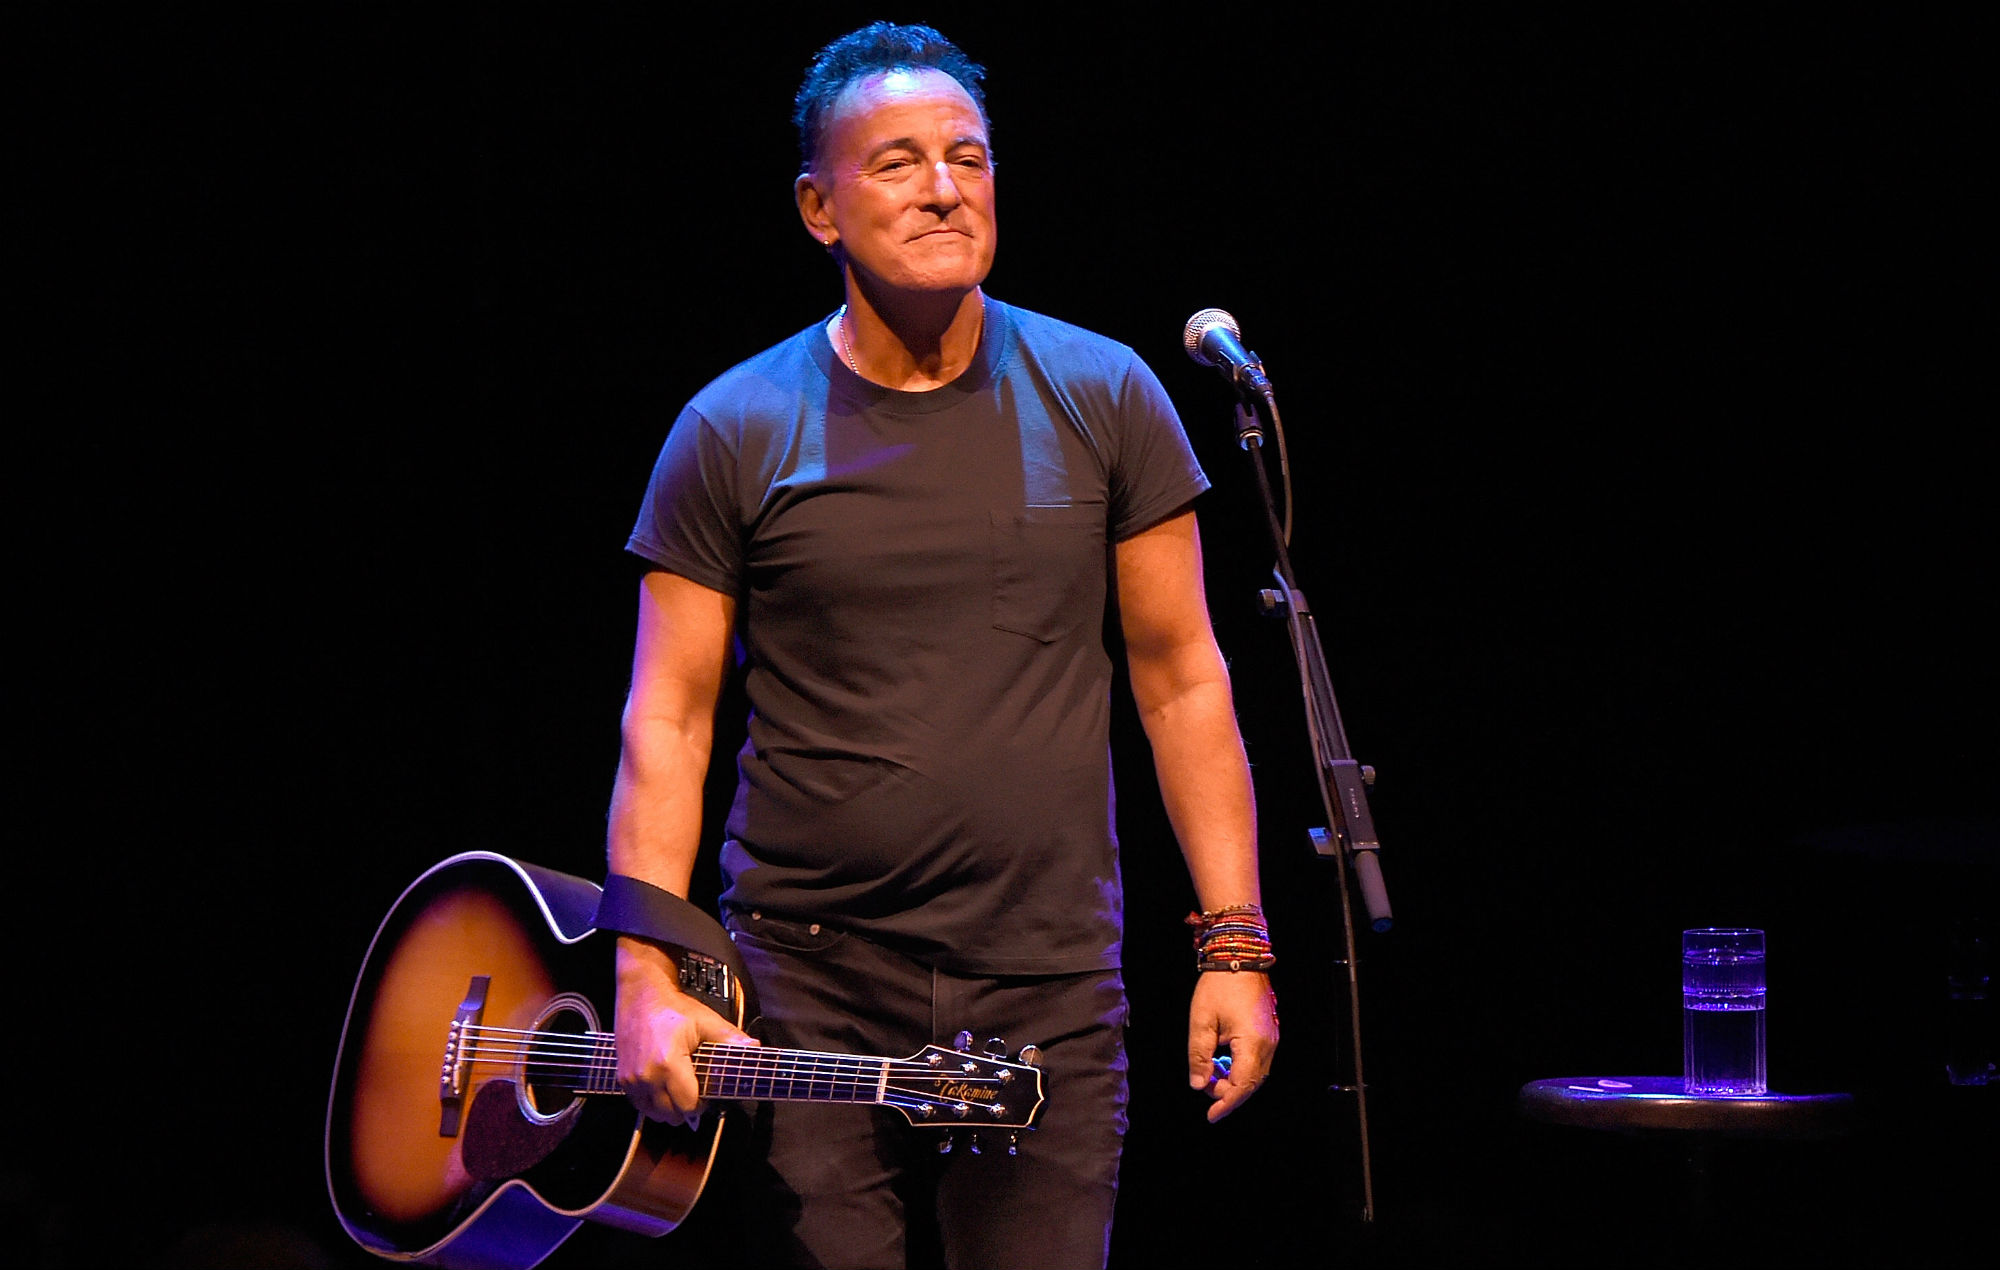 Bruce Springsteen lanza su álbum en vivo 'Streets of Philadelphia'